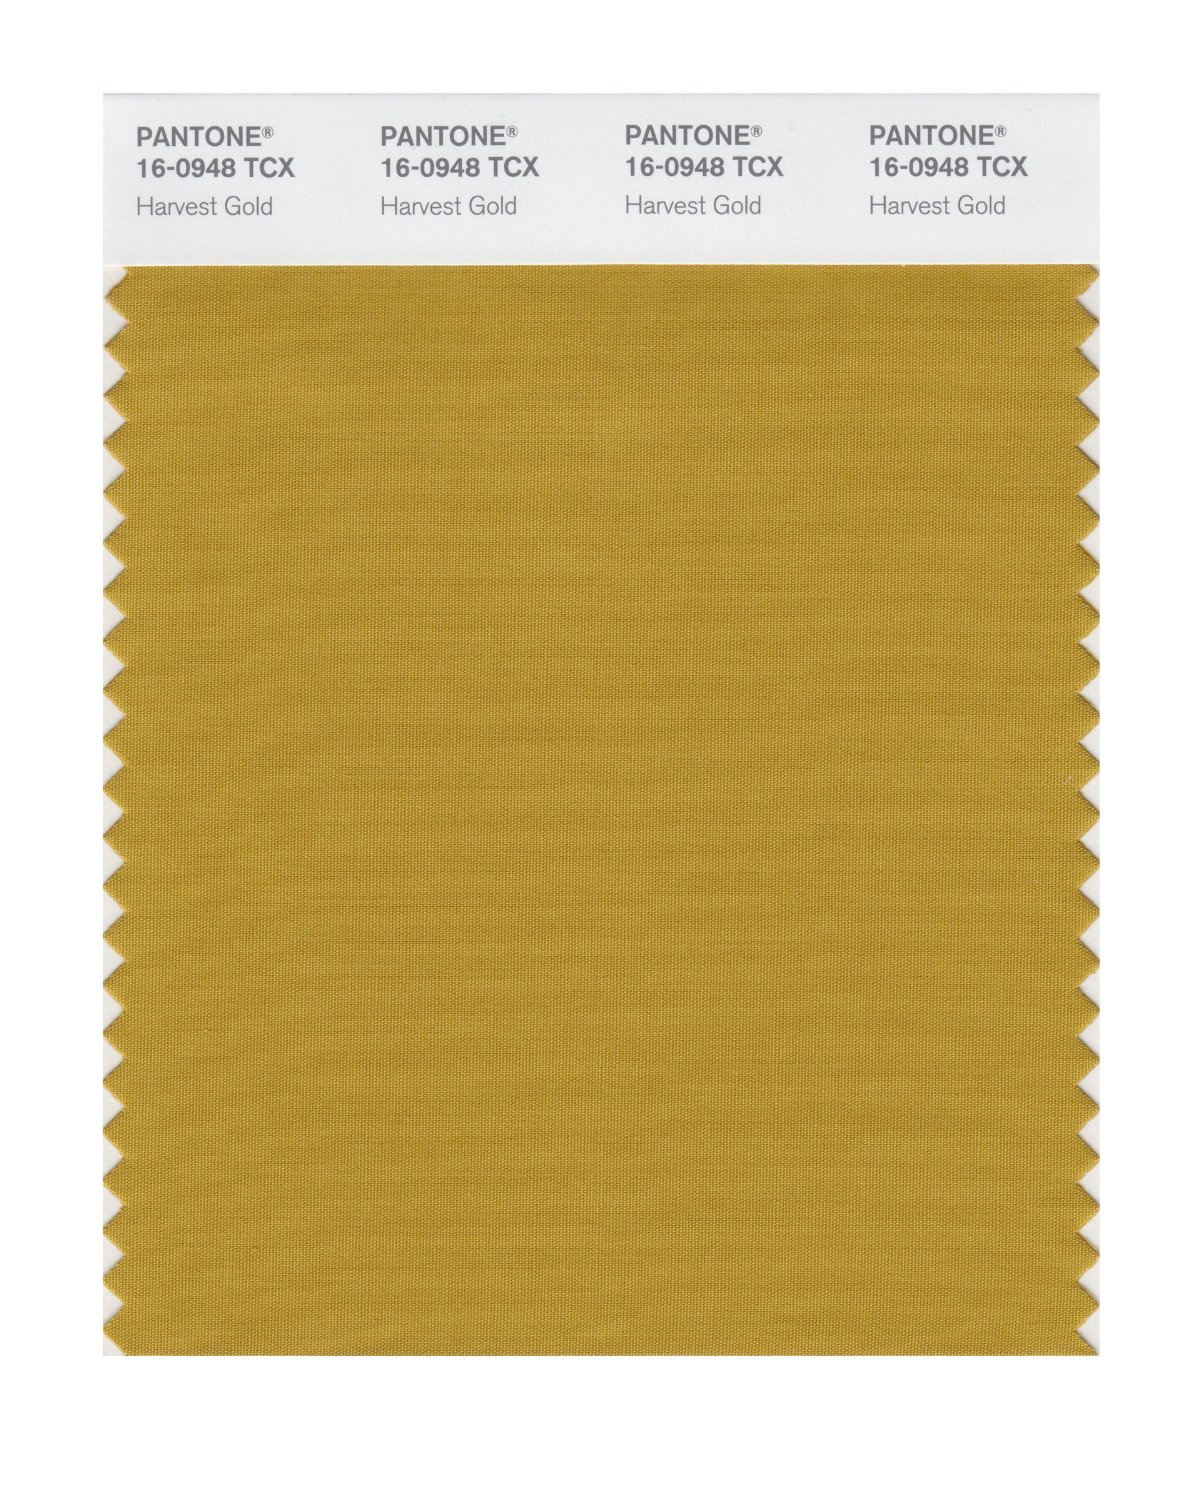 Pantone Smart Swatch 16-0948 Harvest Gold